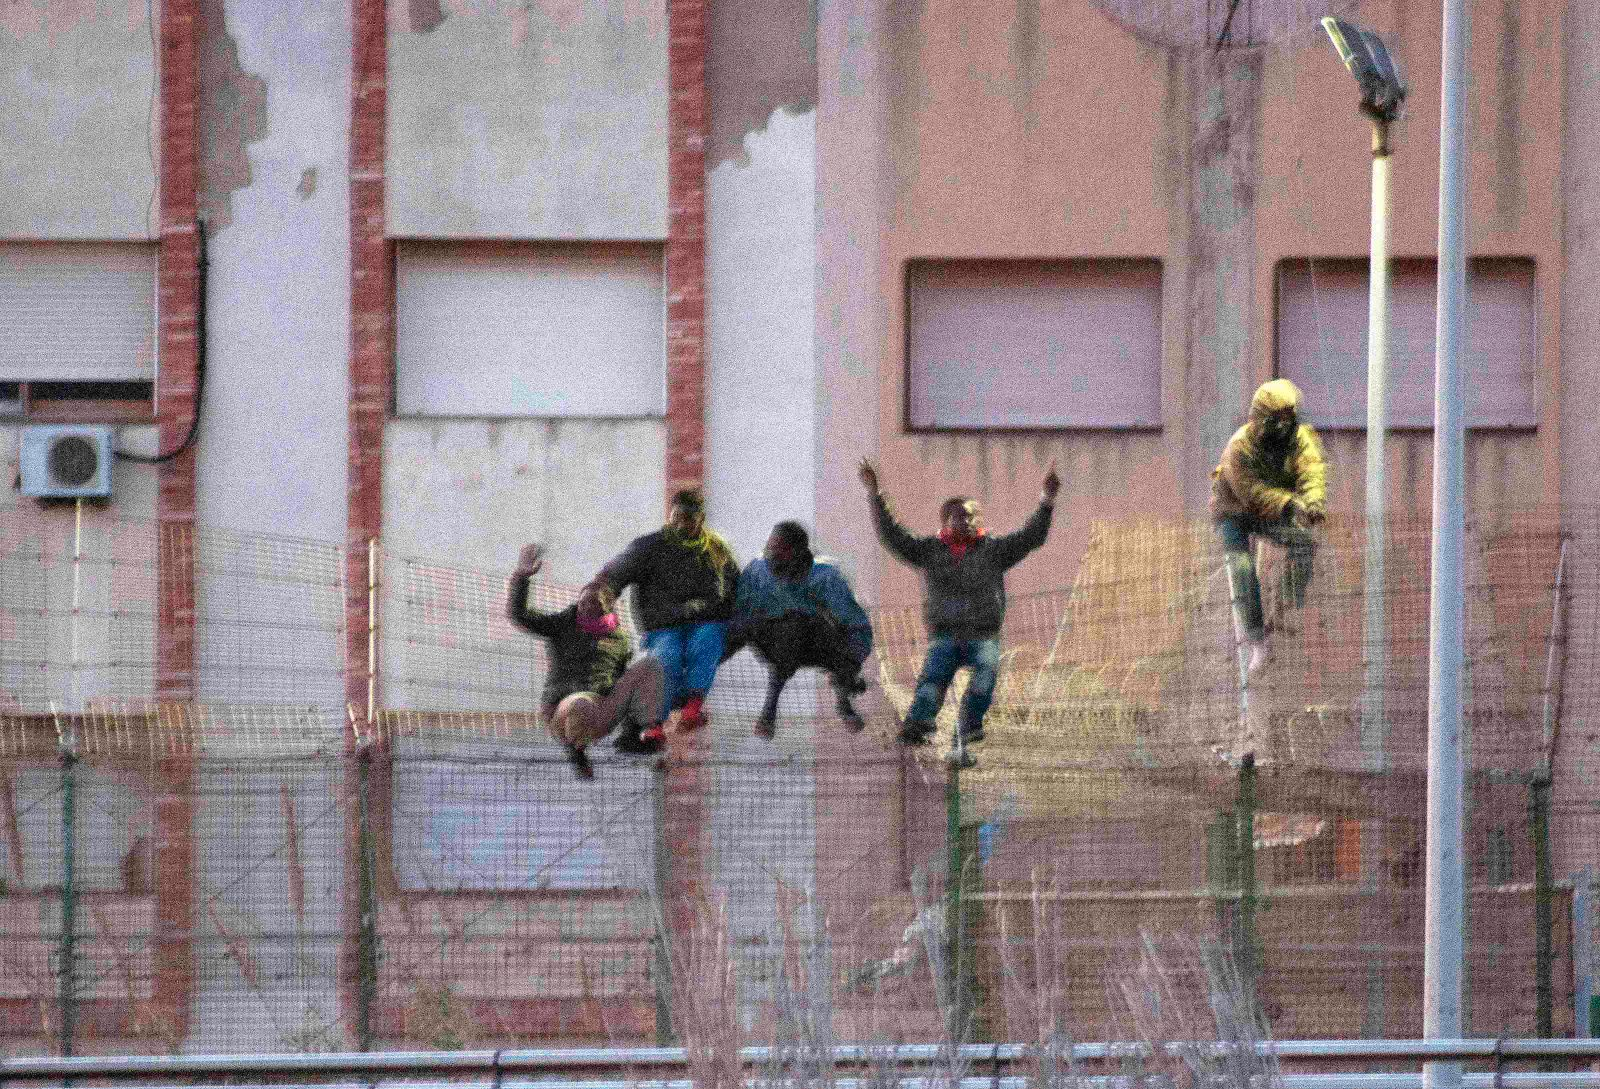 Immigrants scale over border fence separating Spain's north African enclave Melilla from neighboring Morocco